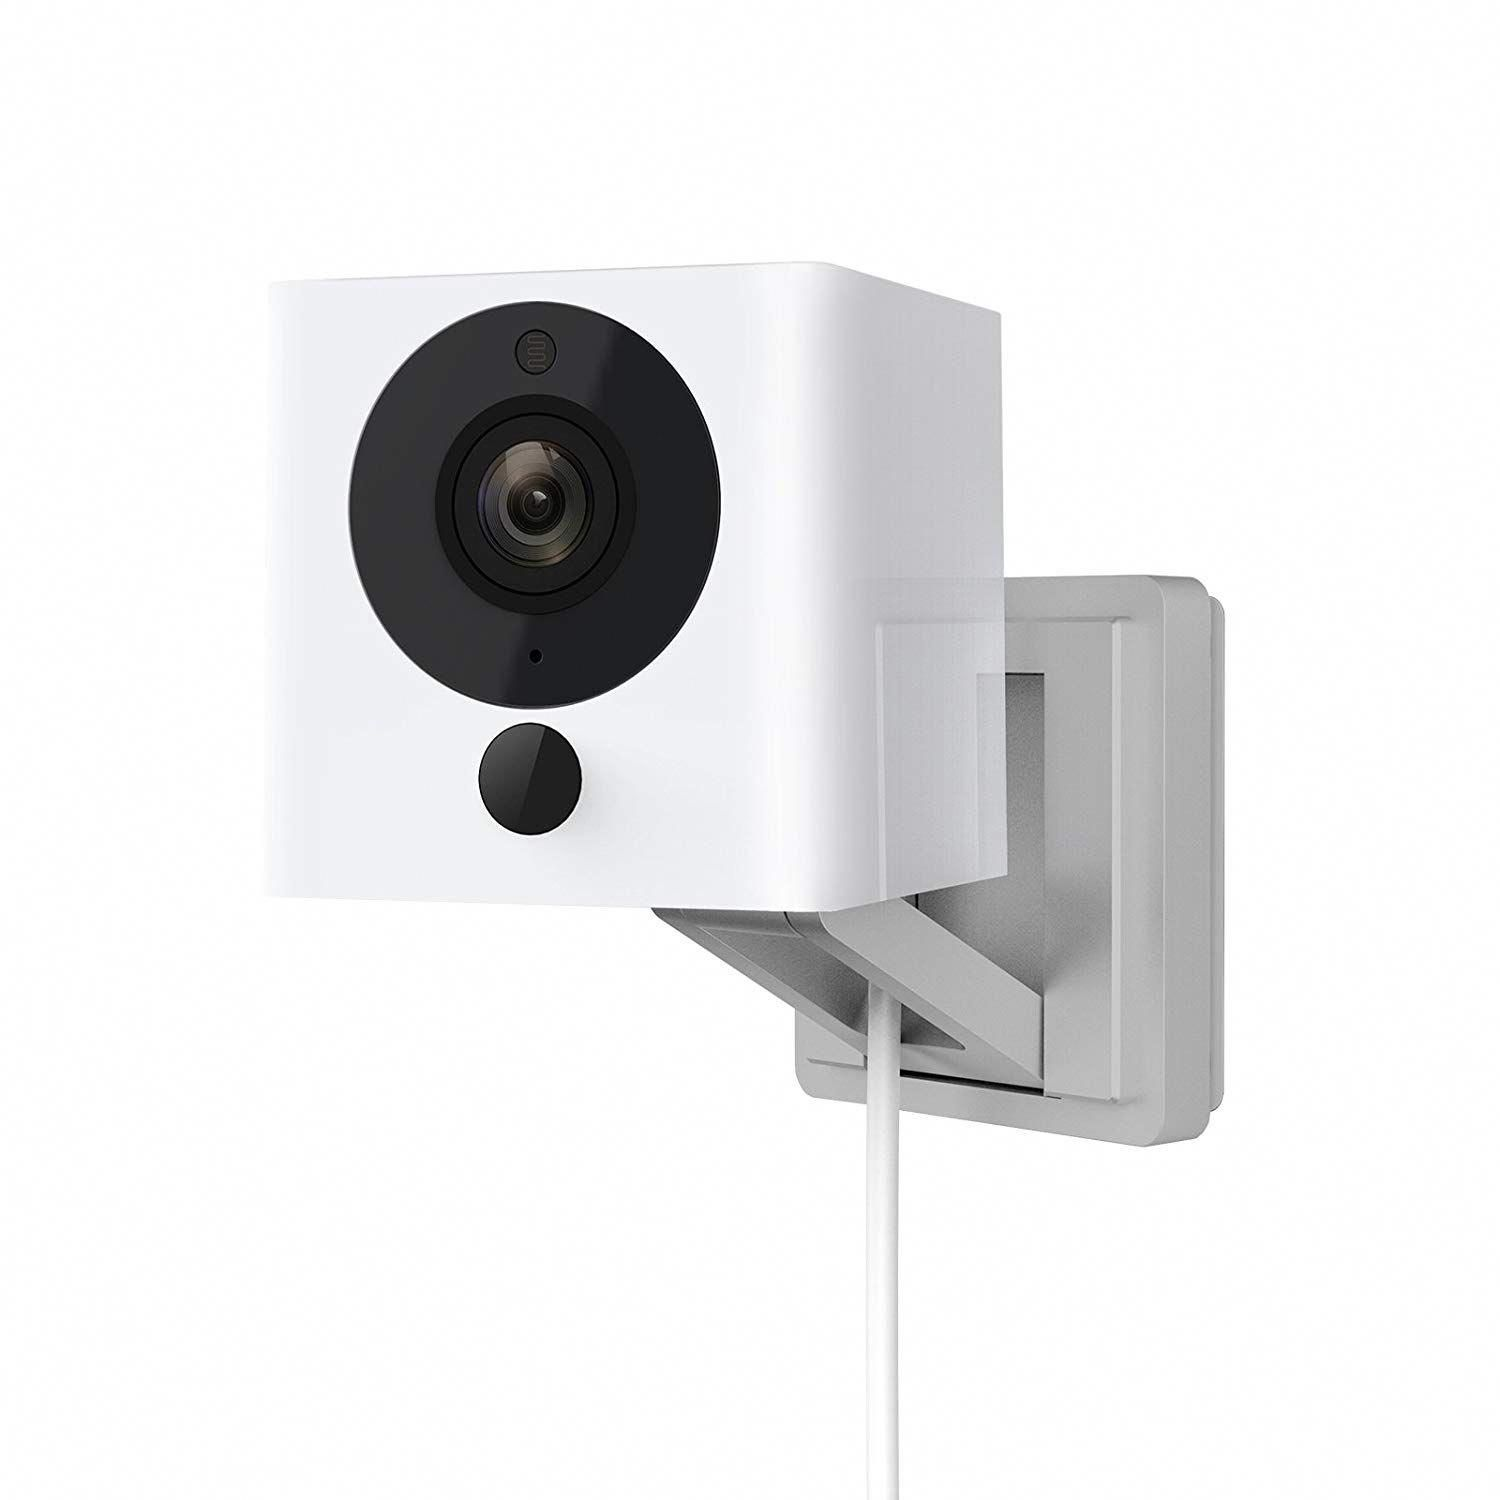 Indoor Security Camera With Night Vision Useful Tools Store Home Security Systems Security Cameras For Home Home Security